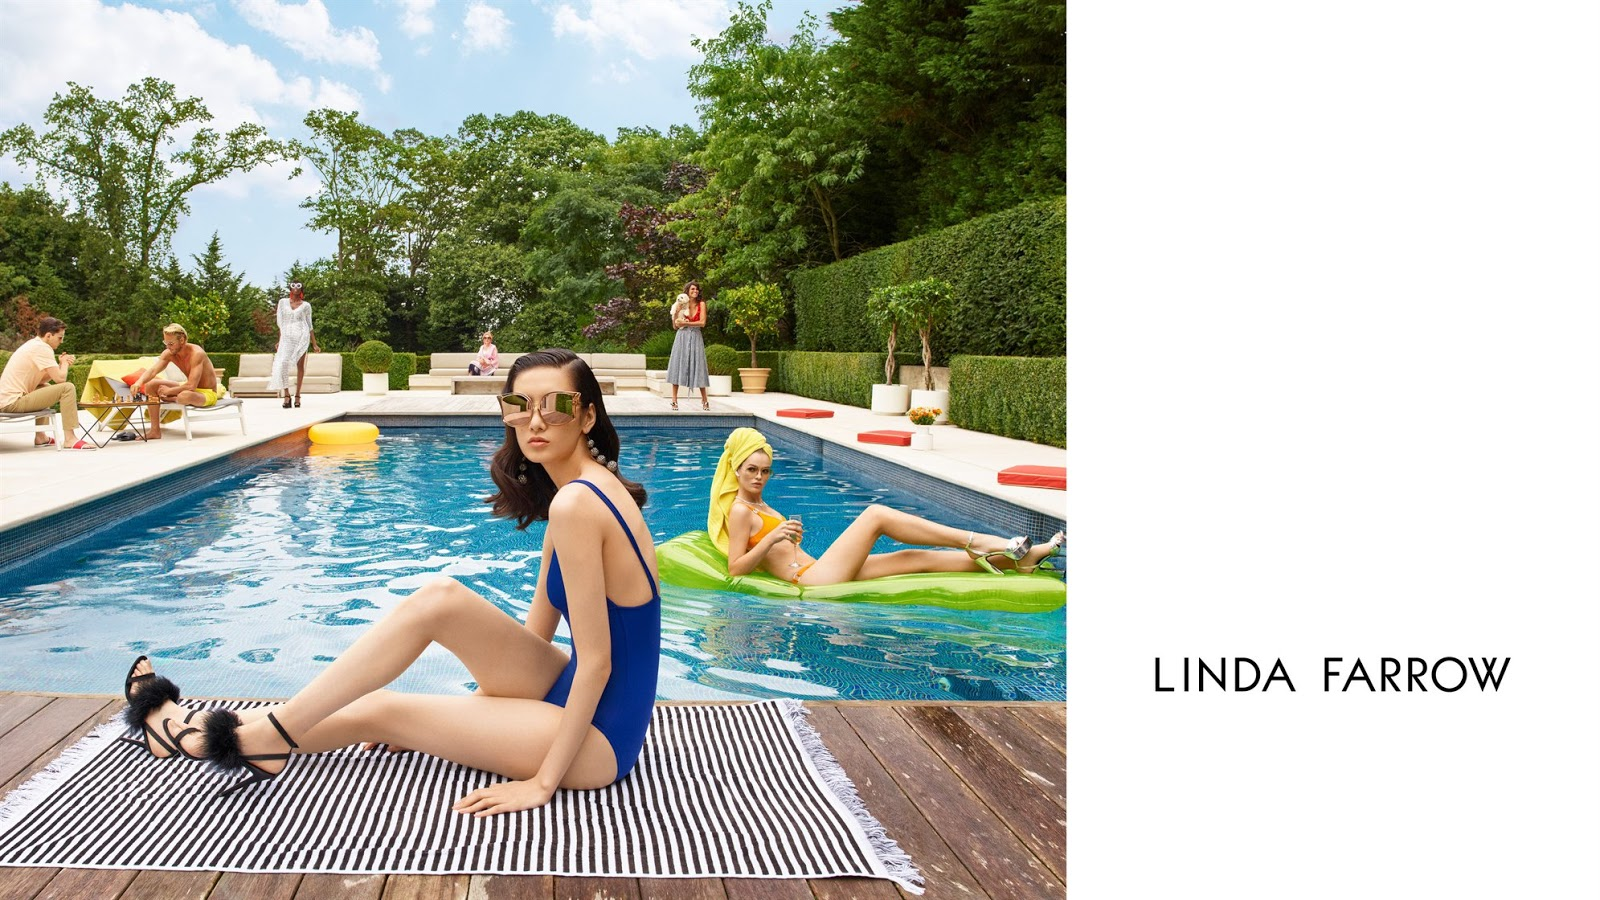 Linda Farrow Spring Summer 2018 Ad Campaign by Slim Aarons